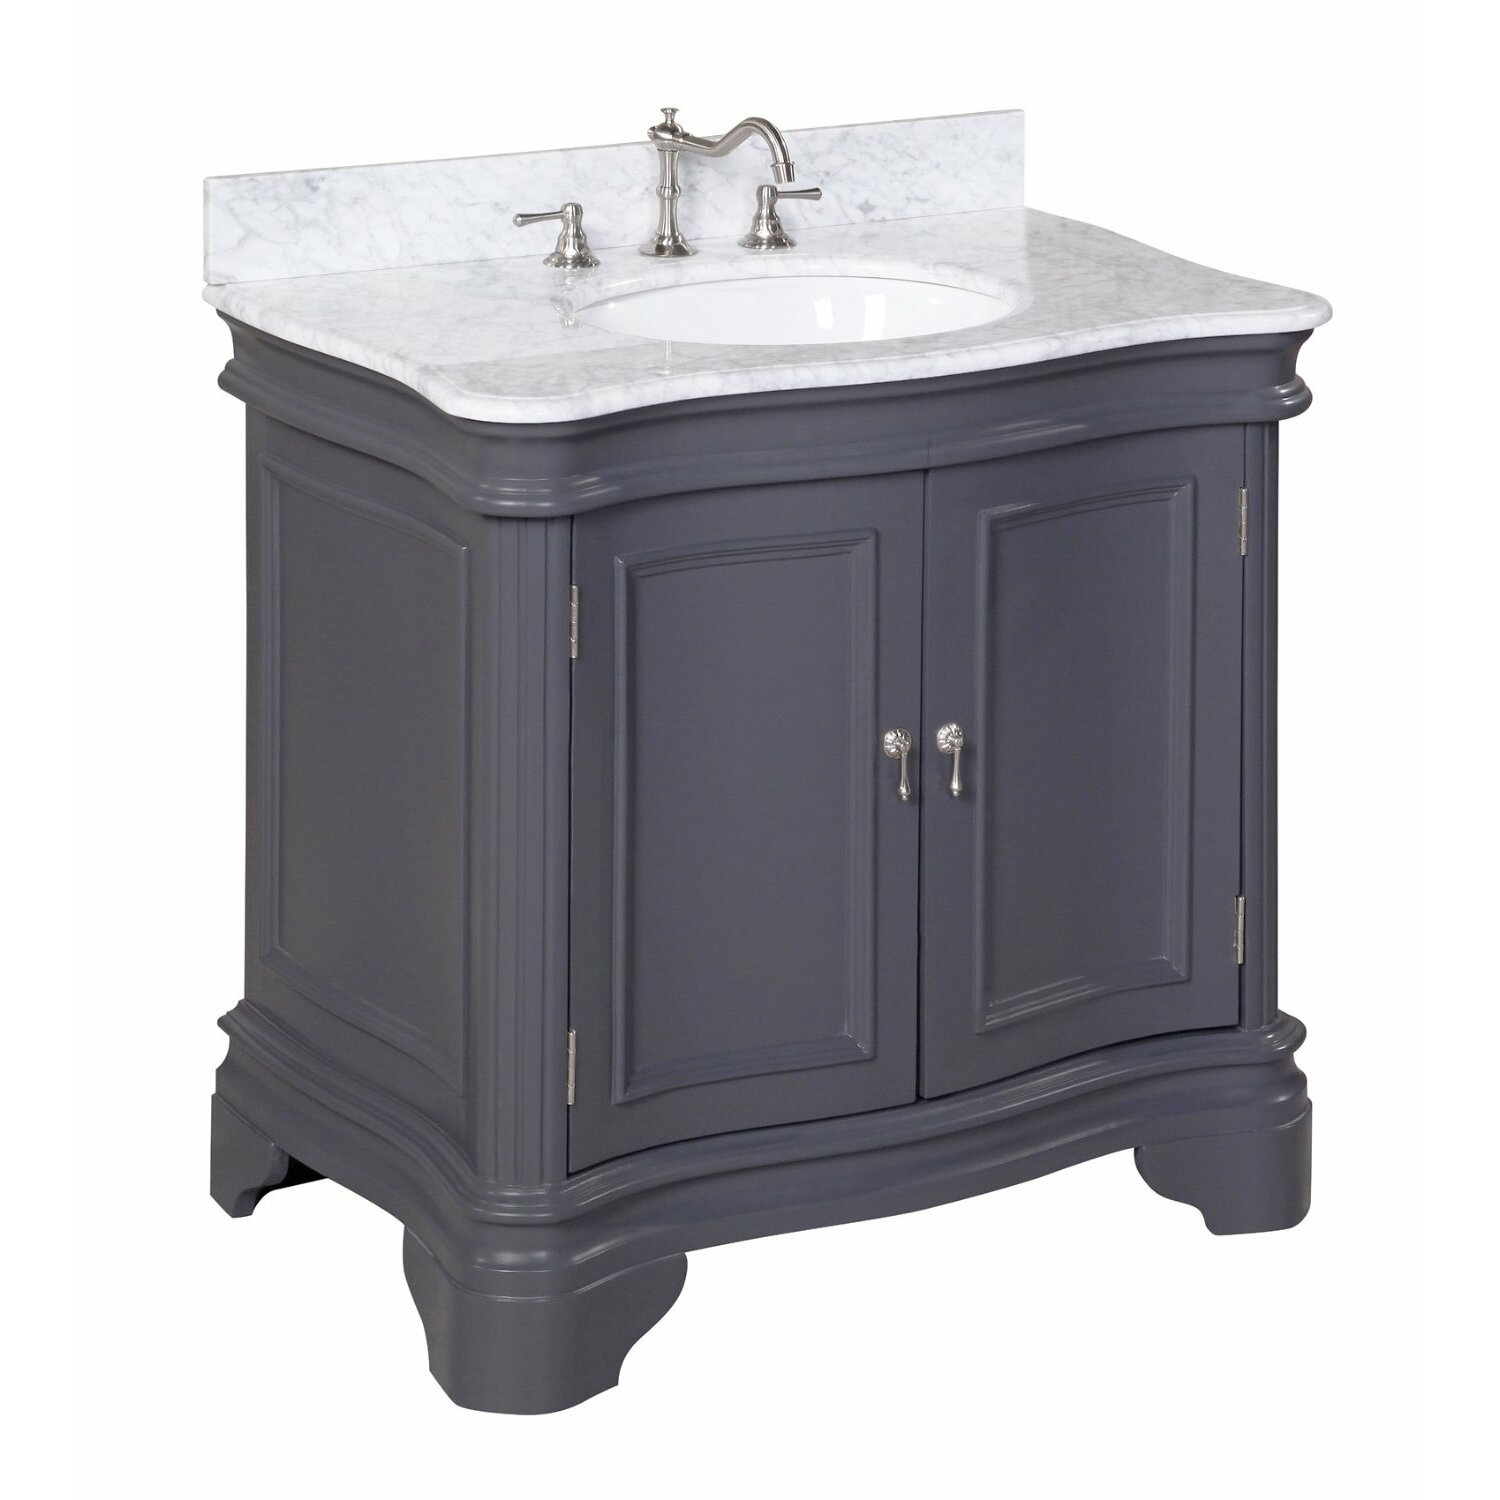 Kbc katherine 36 single bathroom vanity set reviews for Bath and vanity set